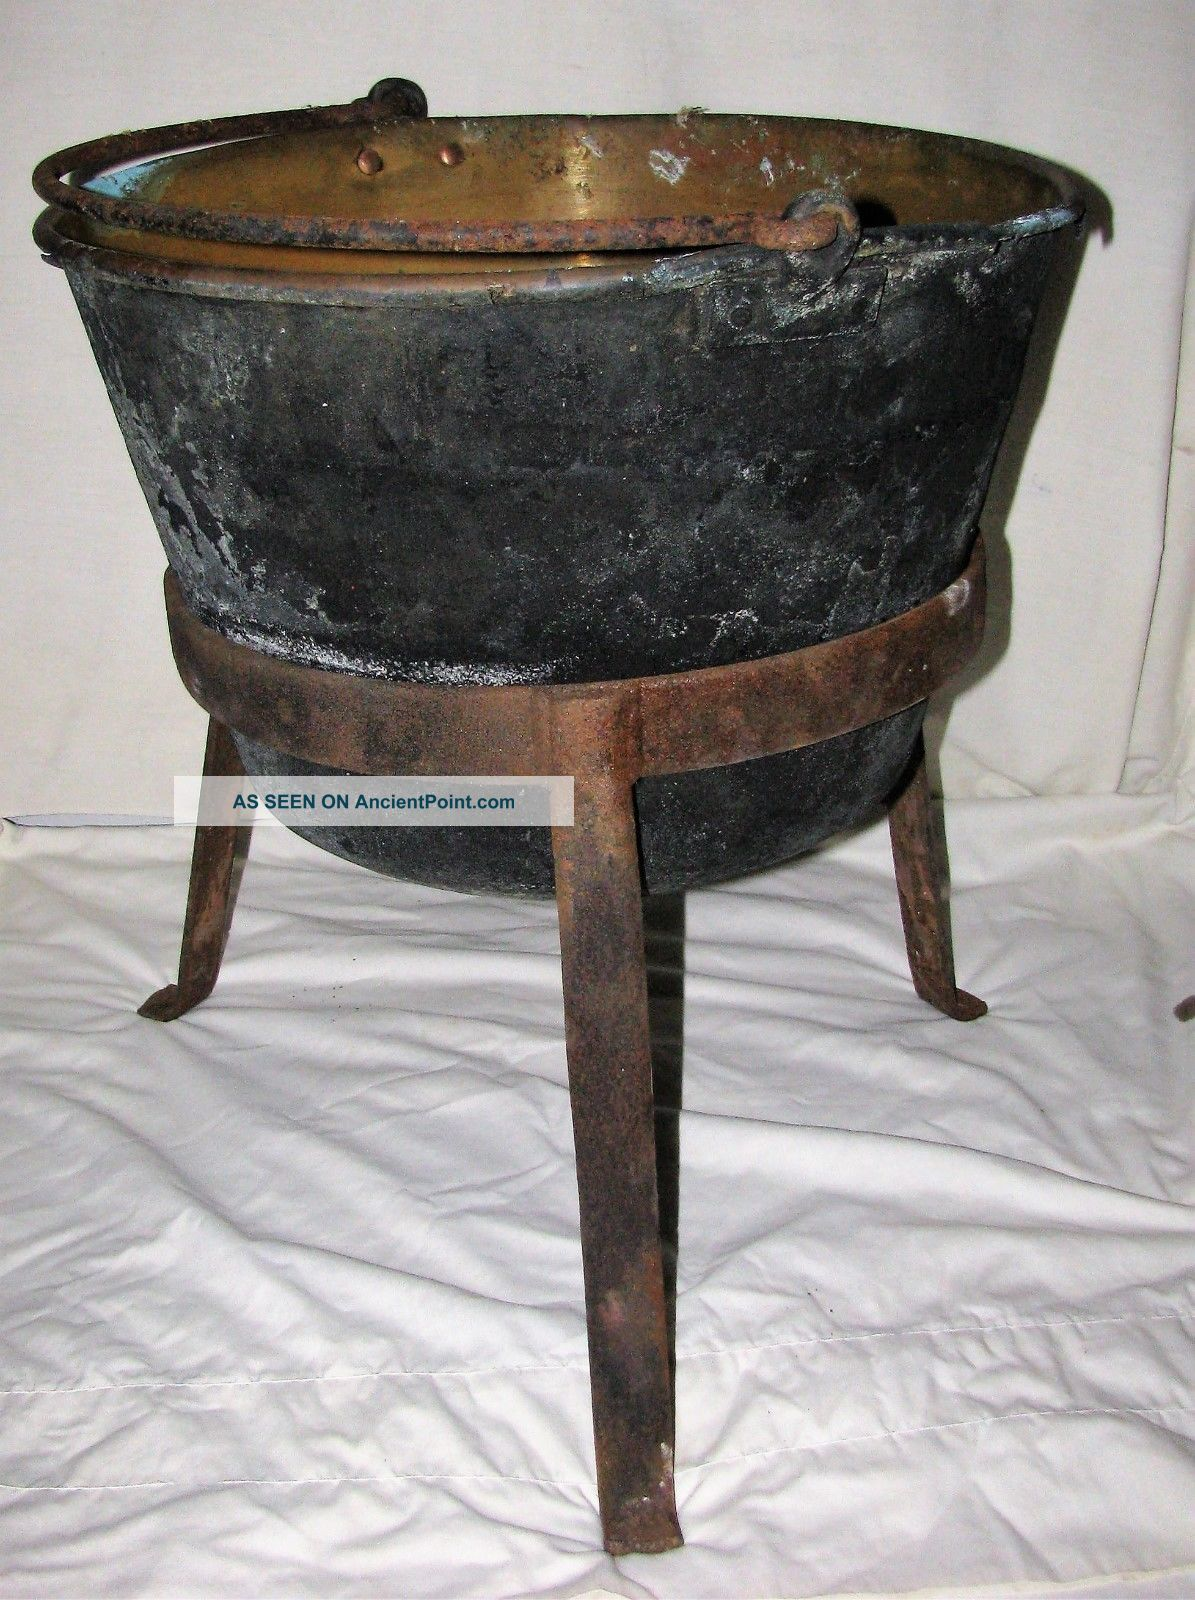 19th Century Small Copper Apple Butter Kettle With 3 Leg Stand. Other Antique Home & Hearth photo